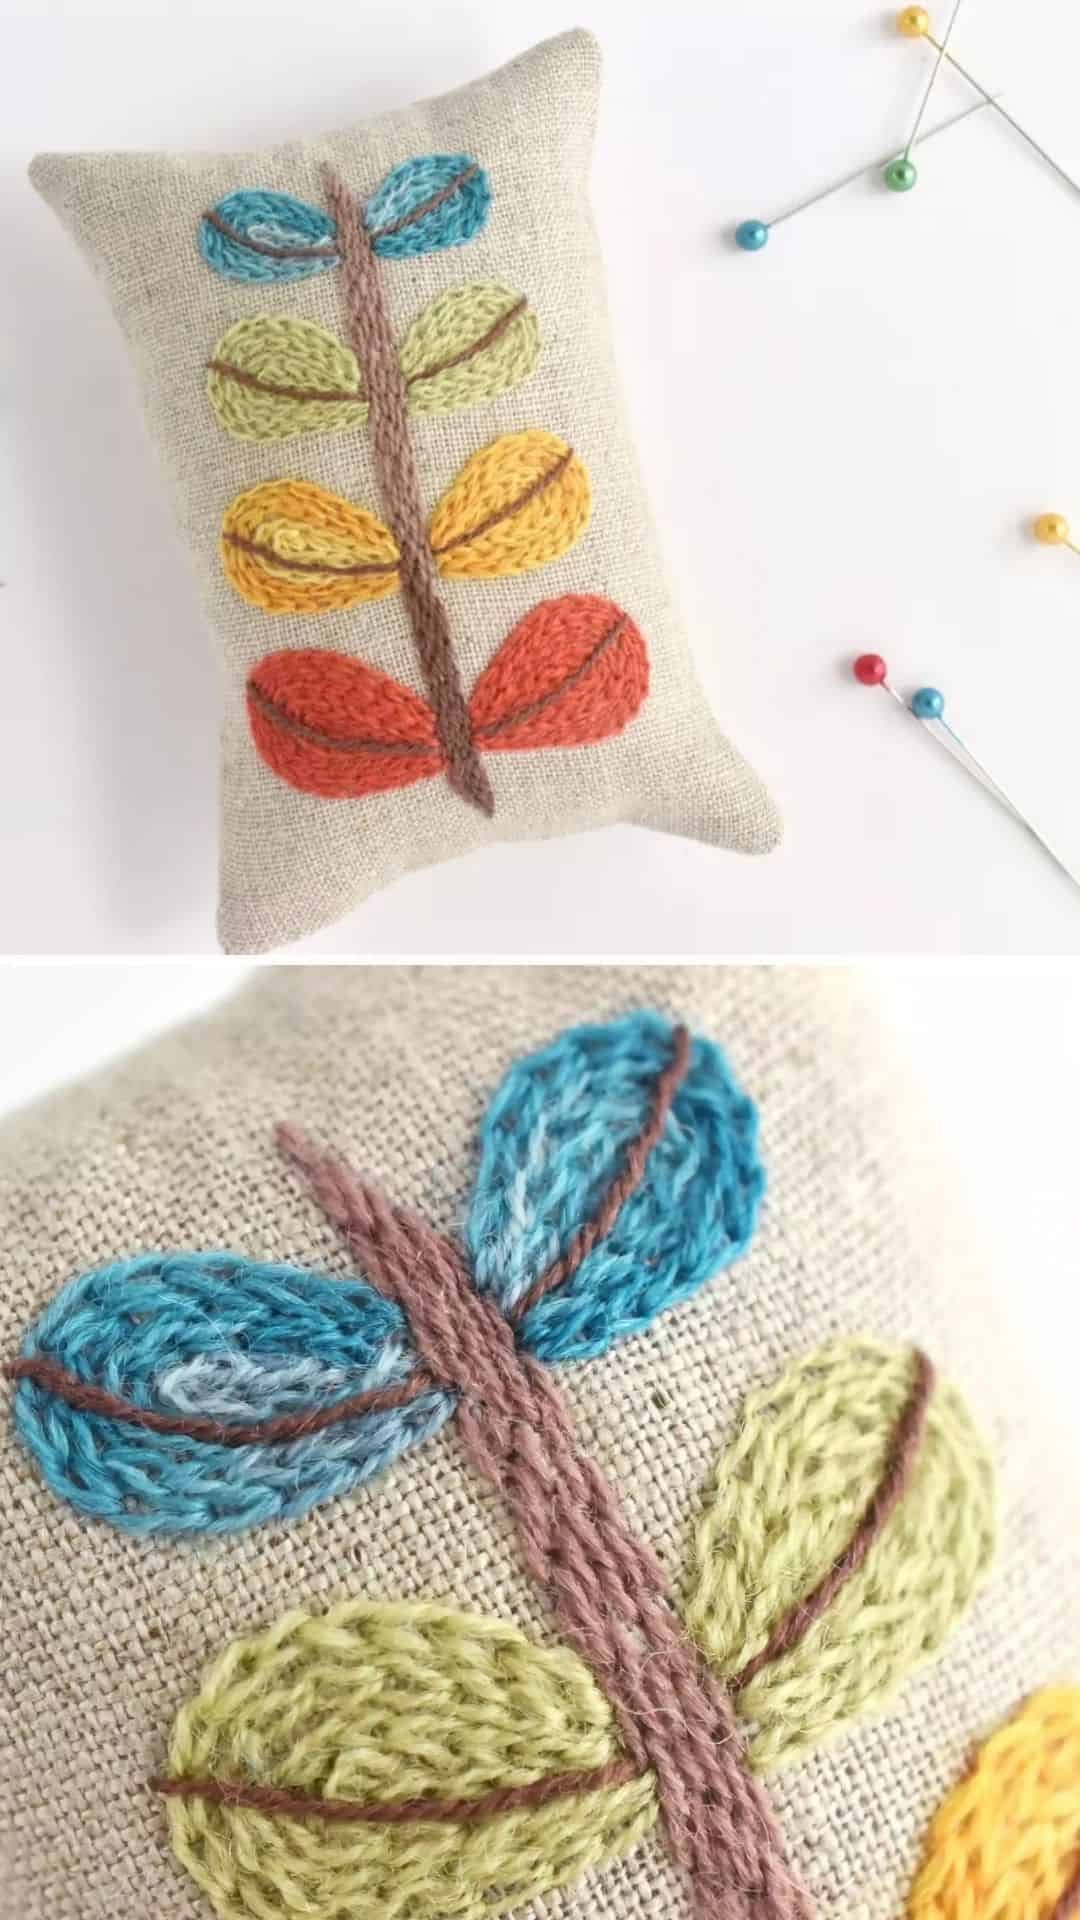 Love this simple crewel work pin cushion idea by Mollie Johanson - it's suitable for beginners and Mollie has shared her free pattern to have a go at making one yourself. The design has an Orla Kiely midcentury modern feel that I love #crewel #embroidery #pattern #free